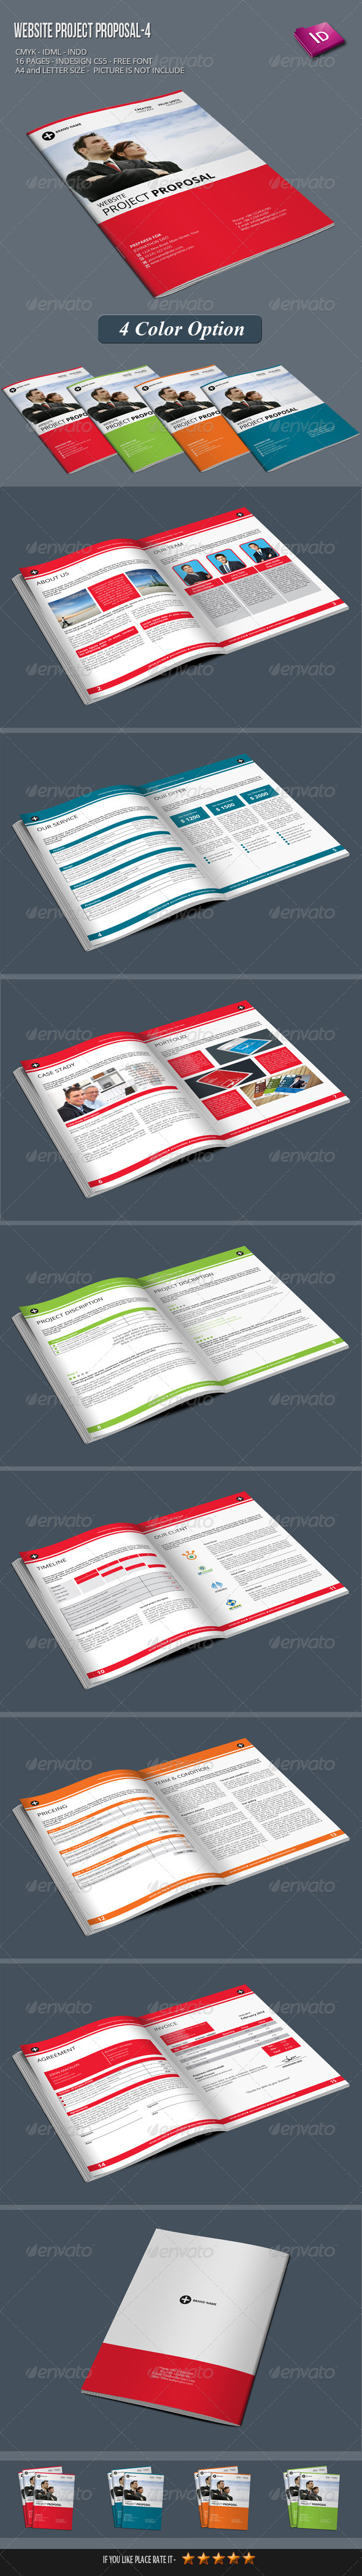 GraphicRiver Website Project Proposal-4 7957606